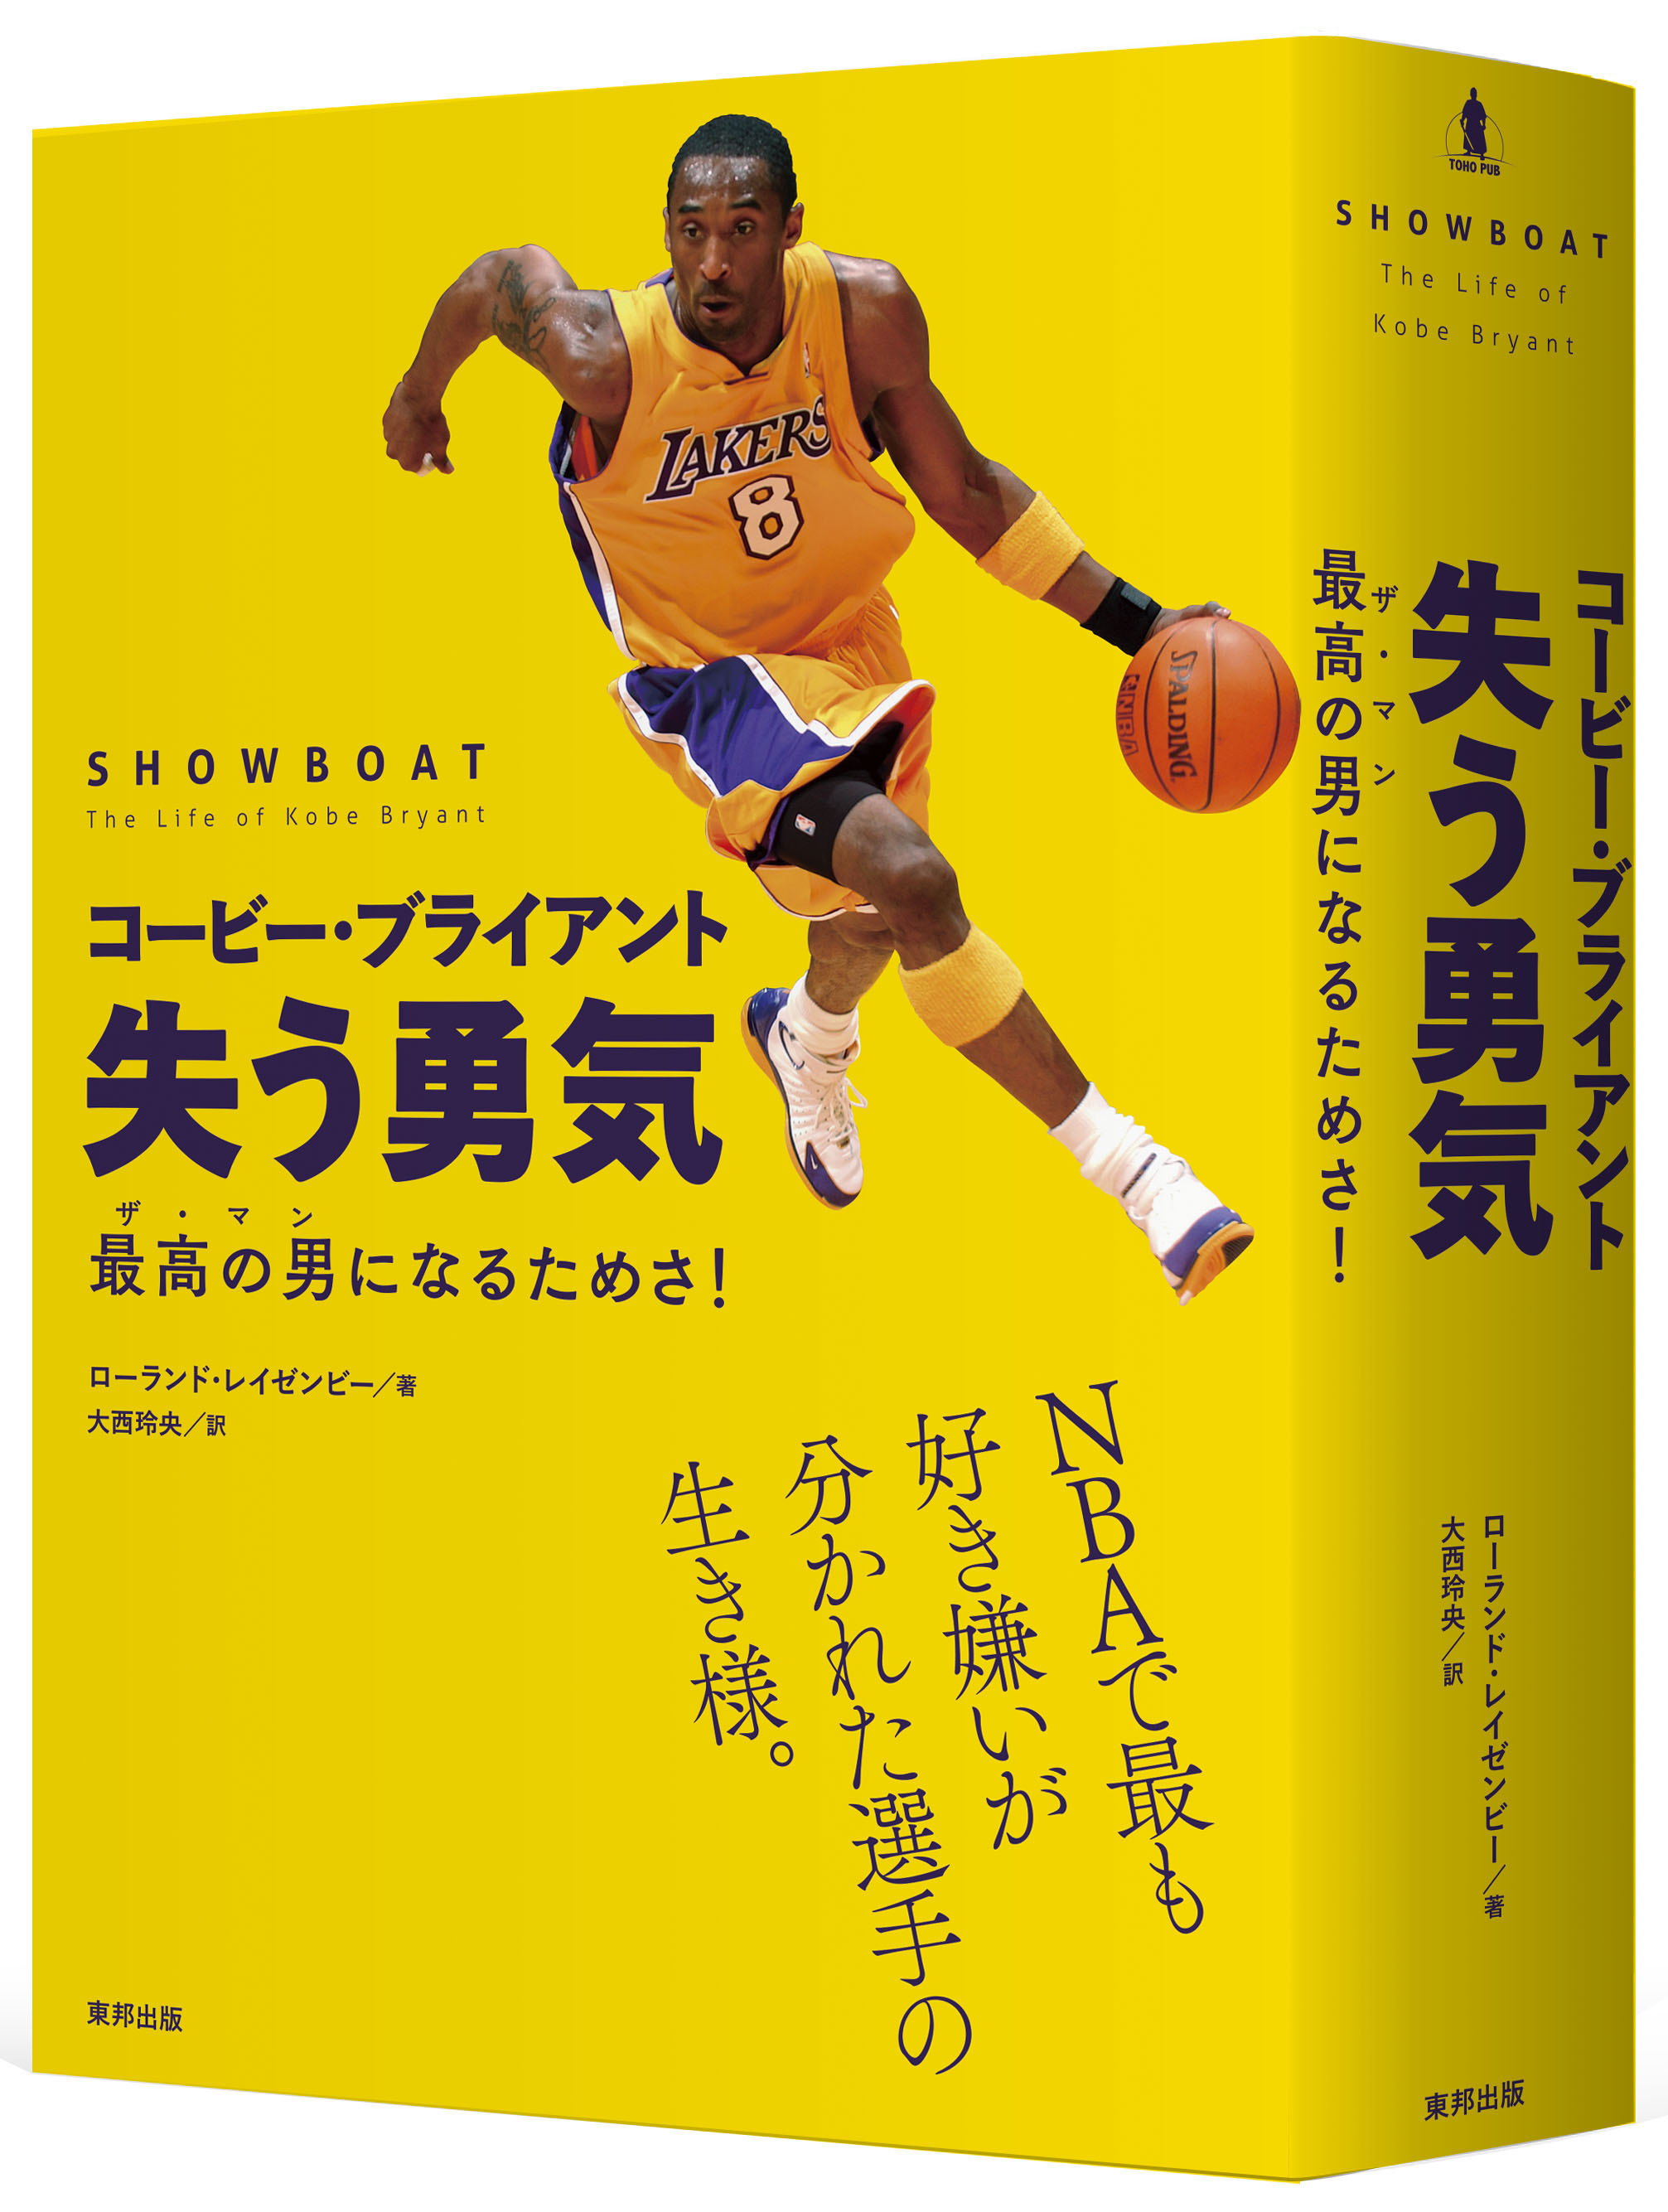 kobe bryant book cover